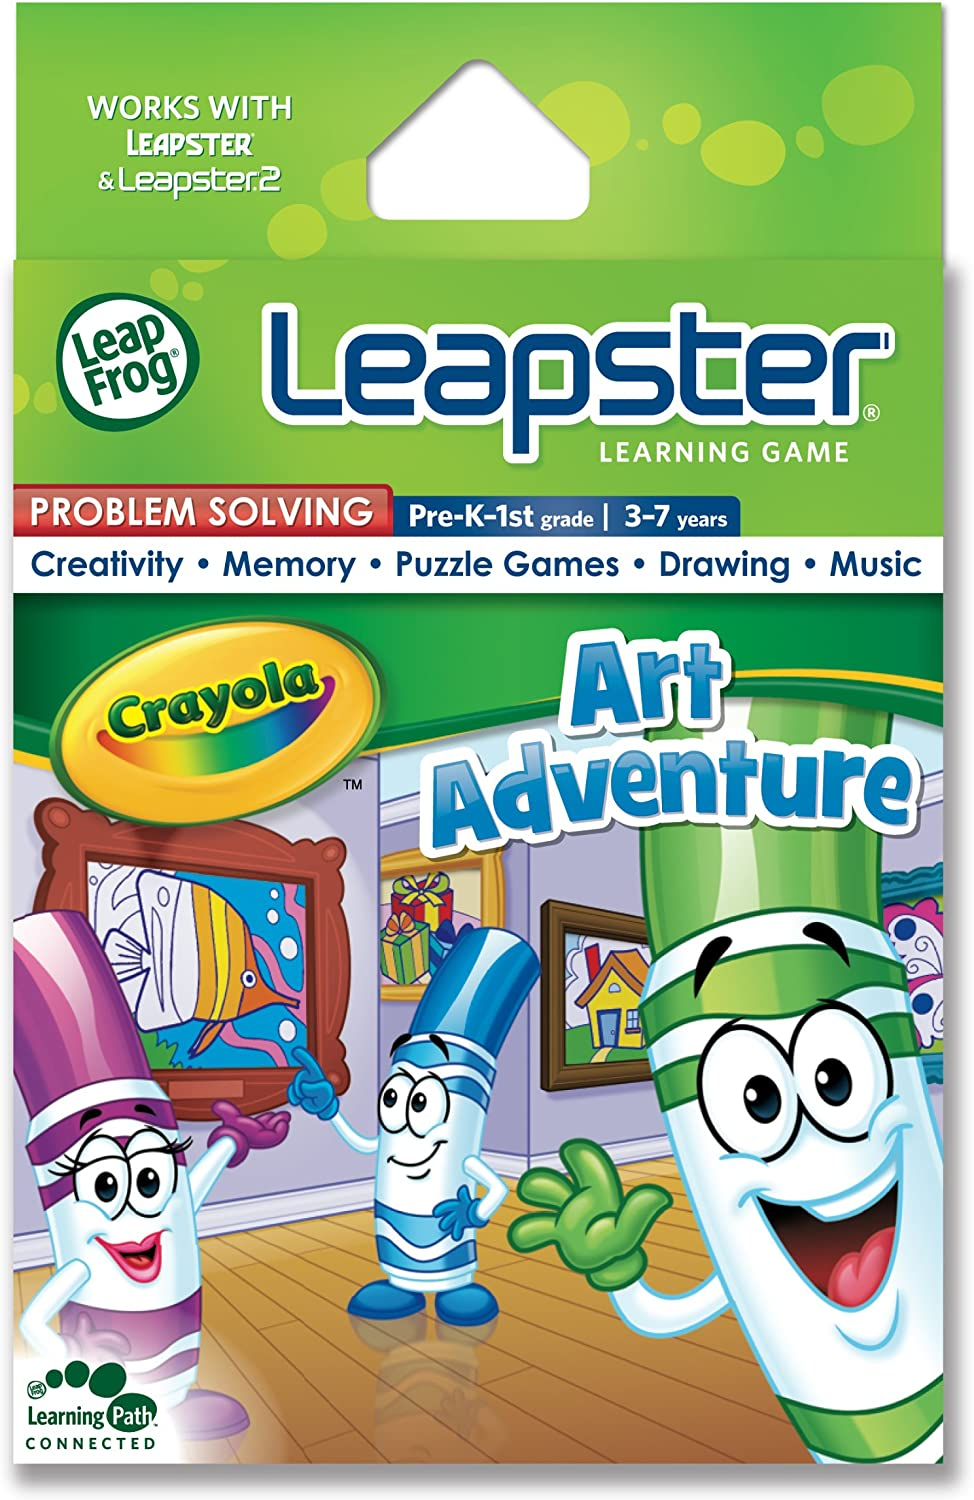 tesco leapster 2 games